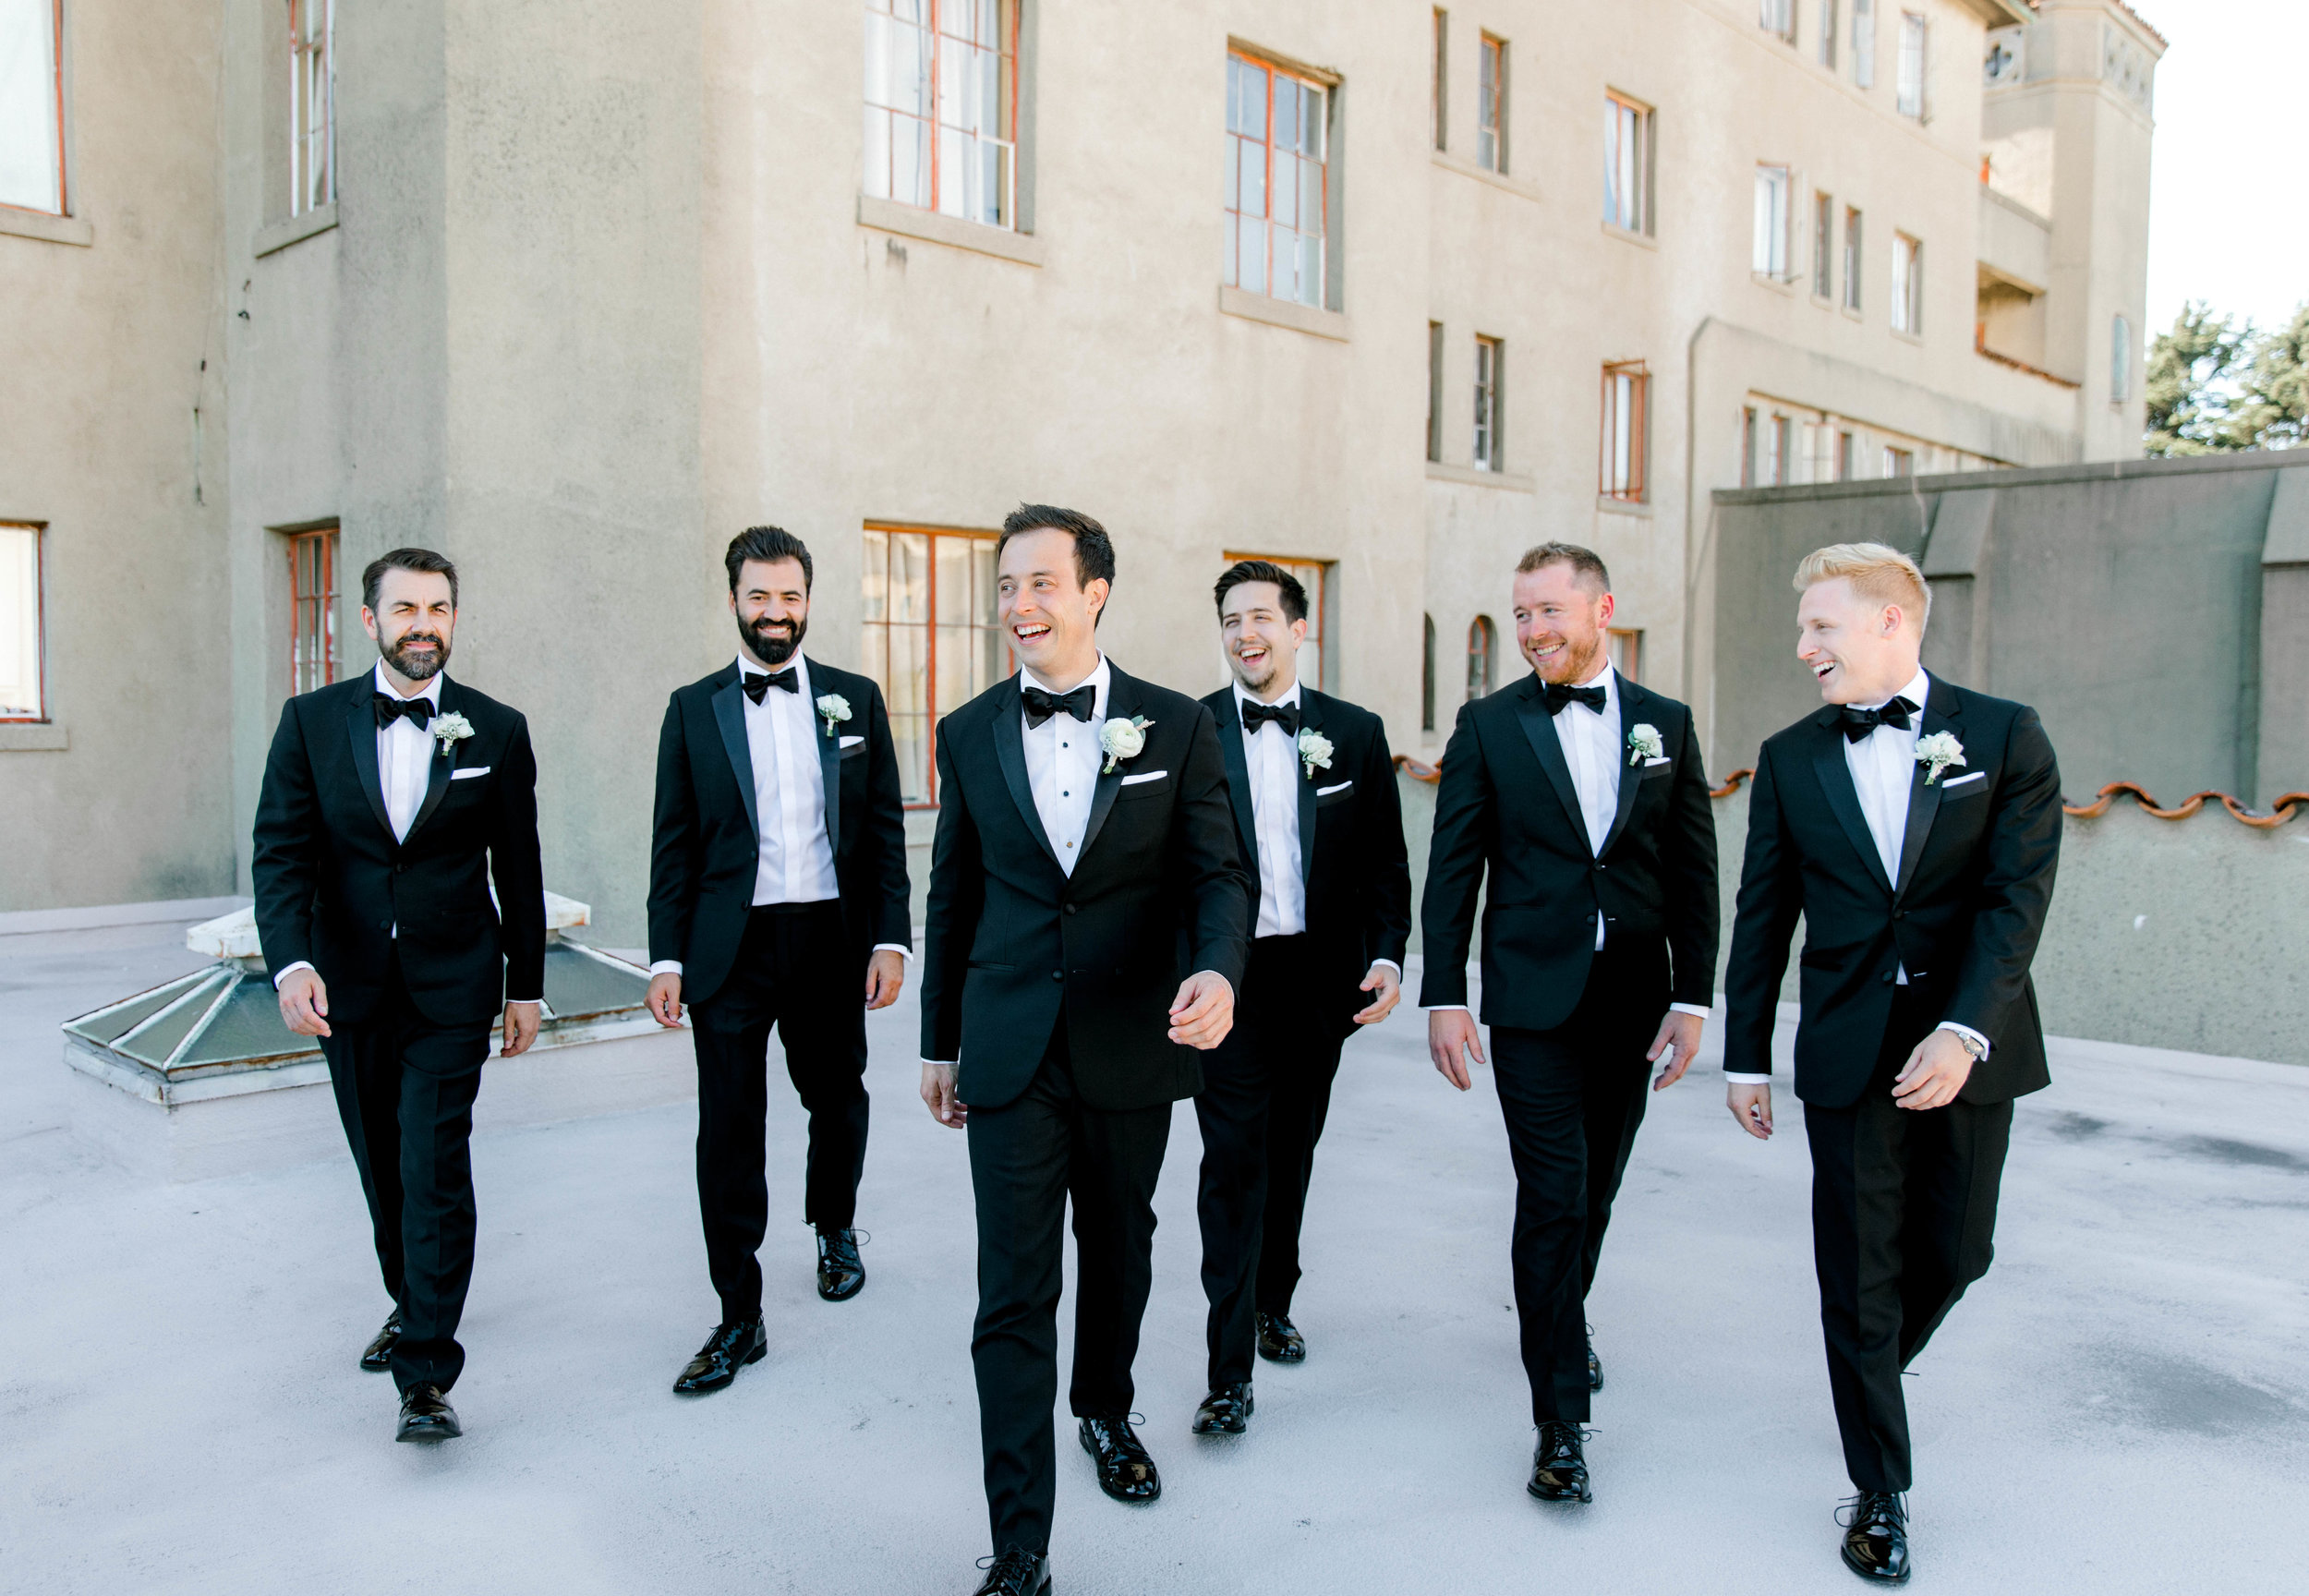 groomsmen-cali-berkeley-wedding-1.jpg